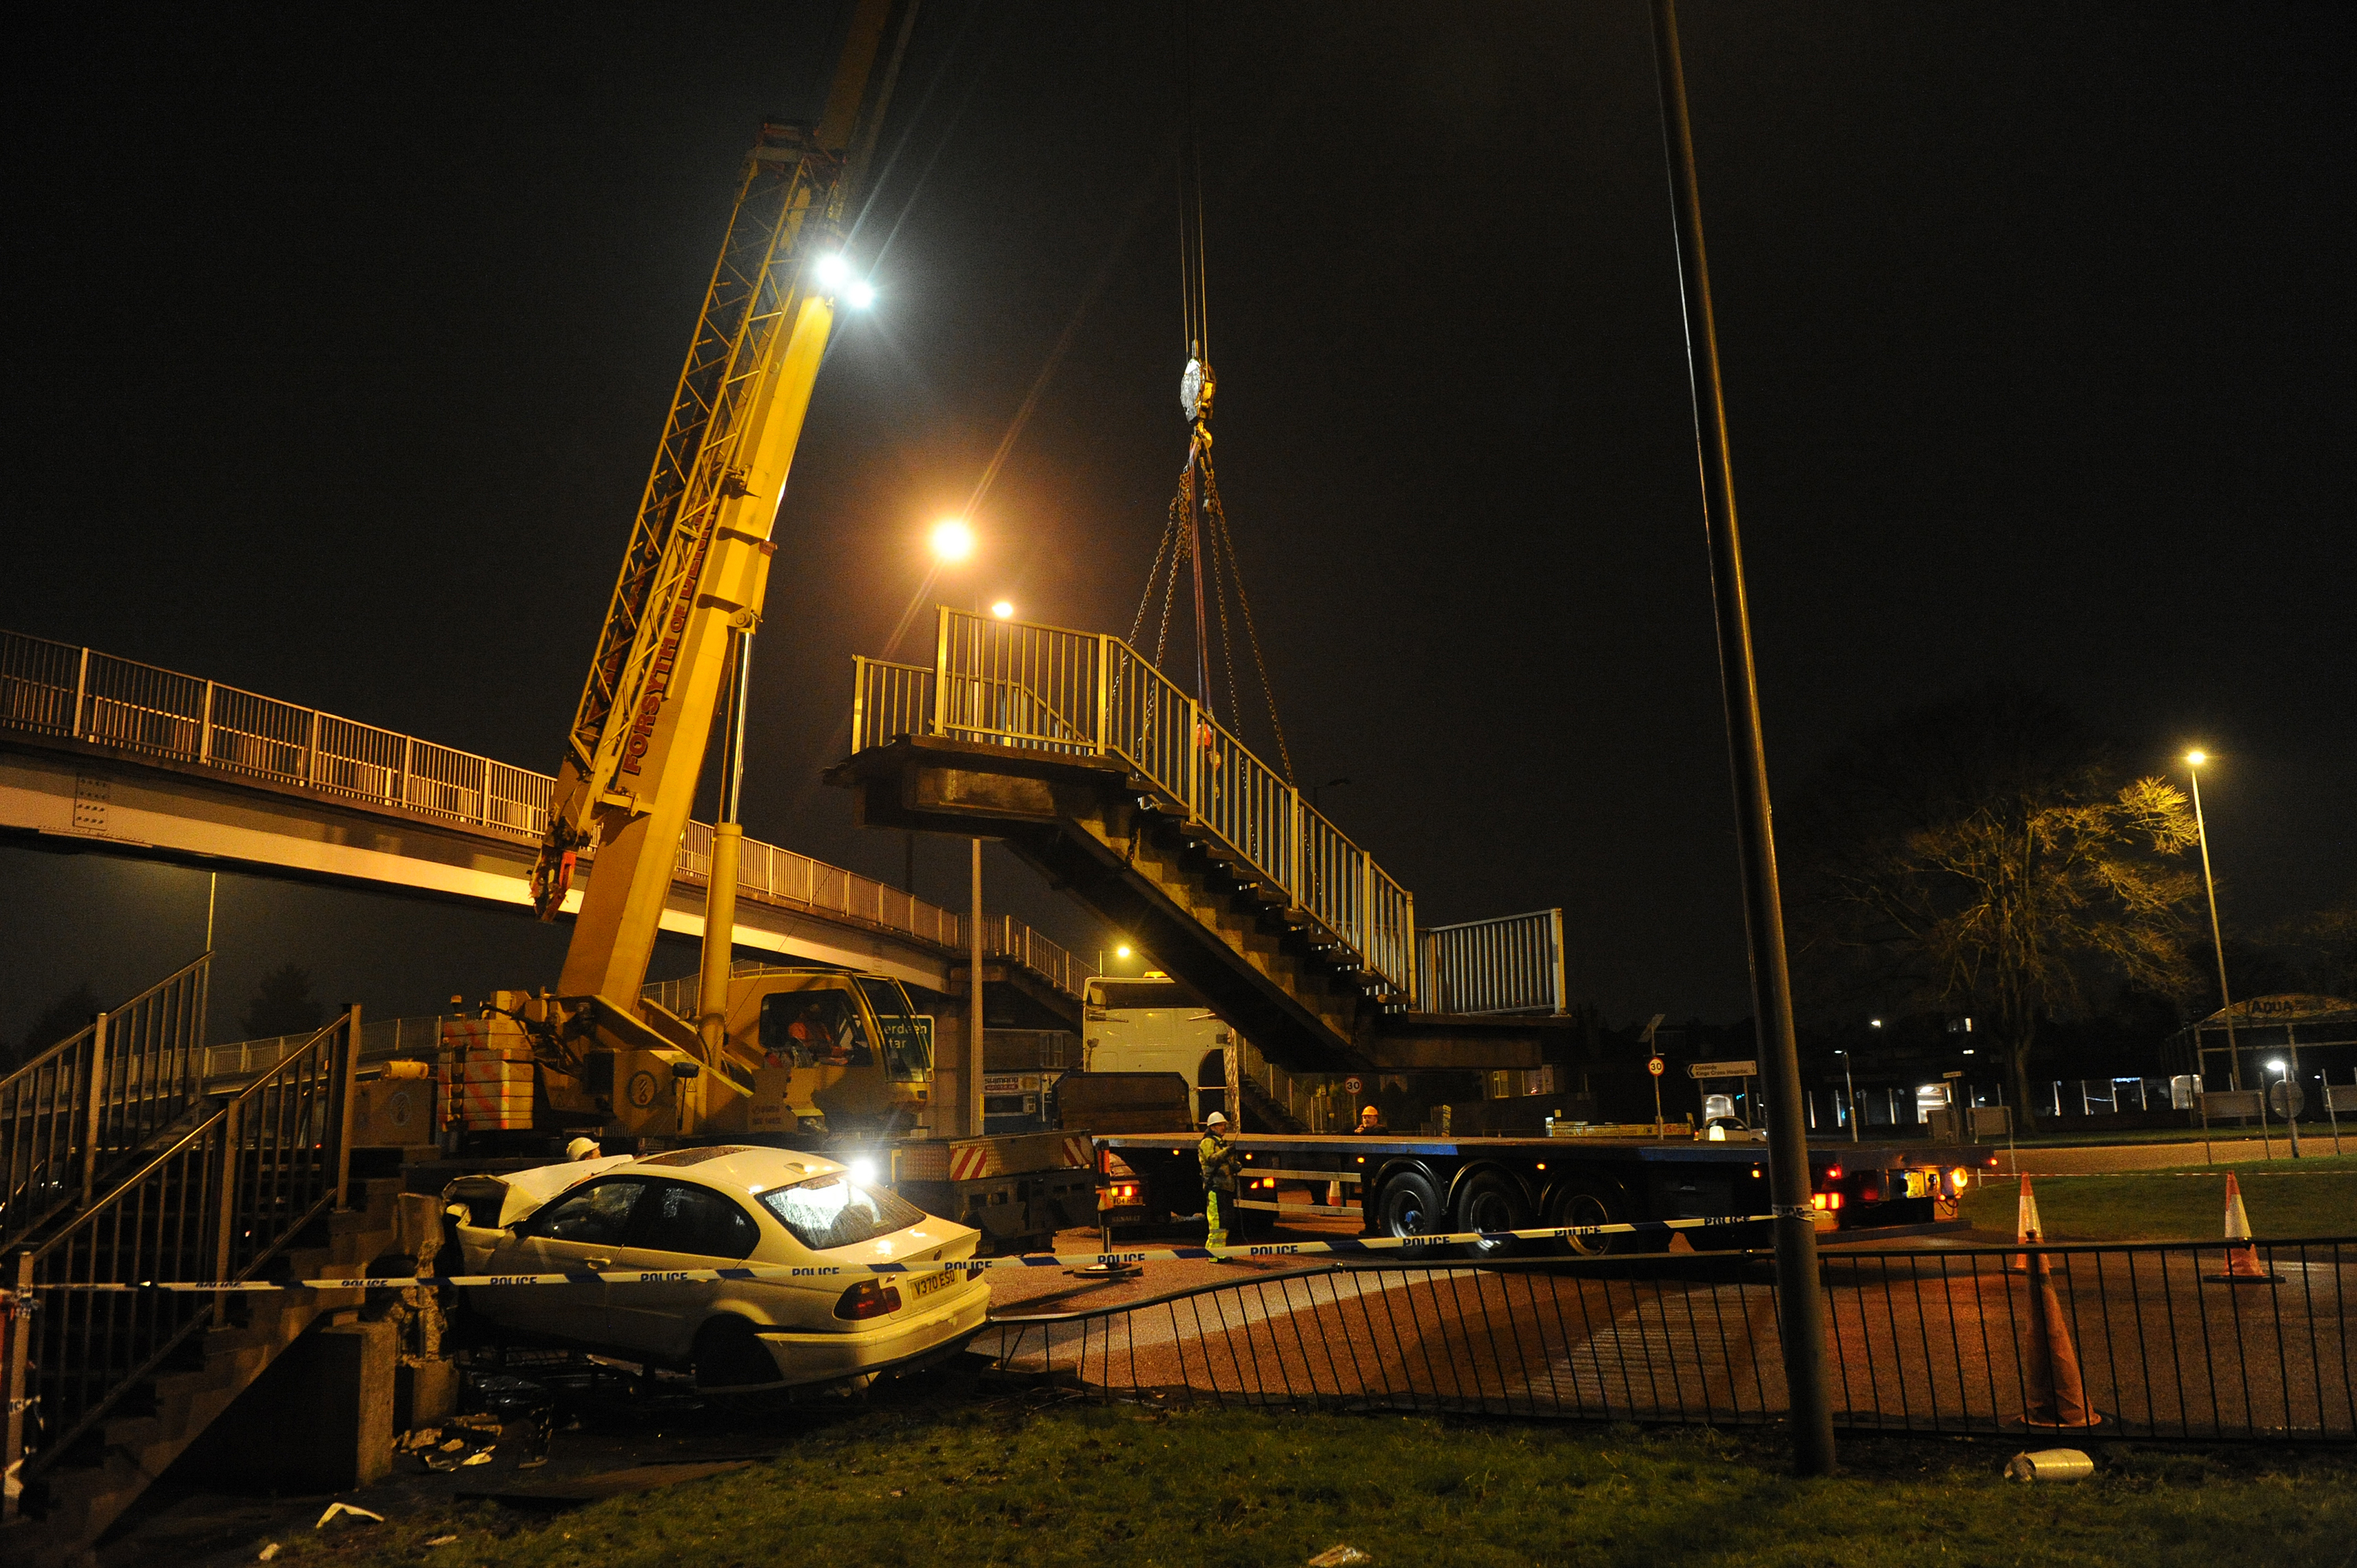 The footbridge was badly damaged when a high-powered BMW ploughed into it in January. The damaged section had to be craned away.